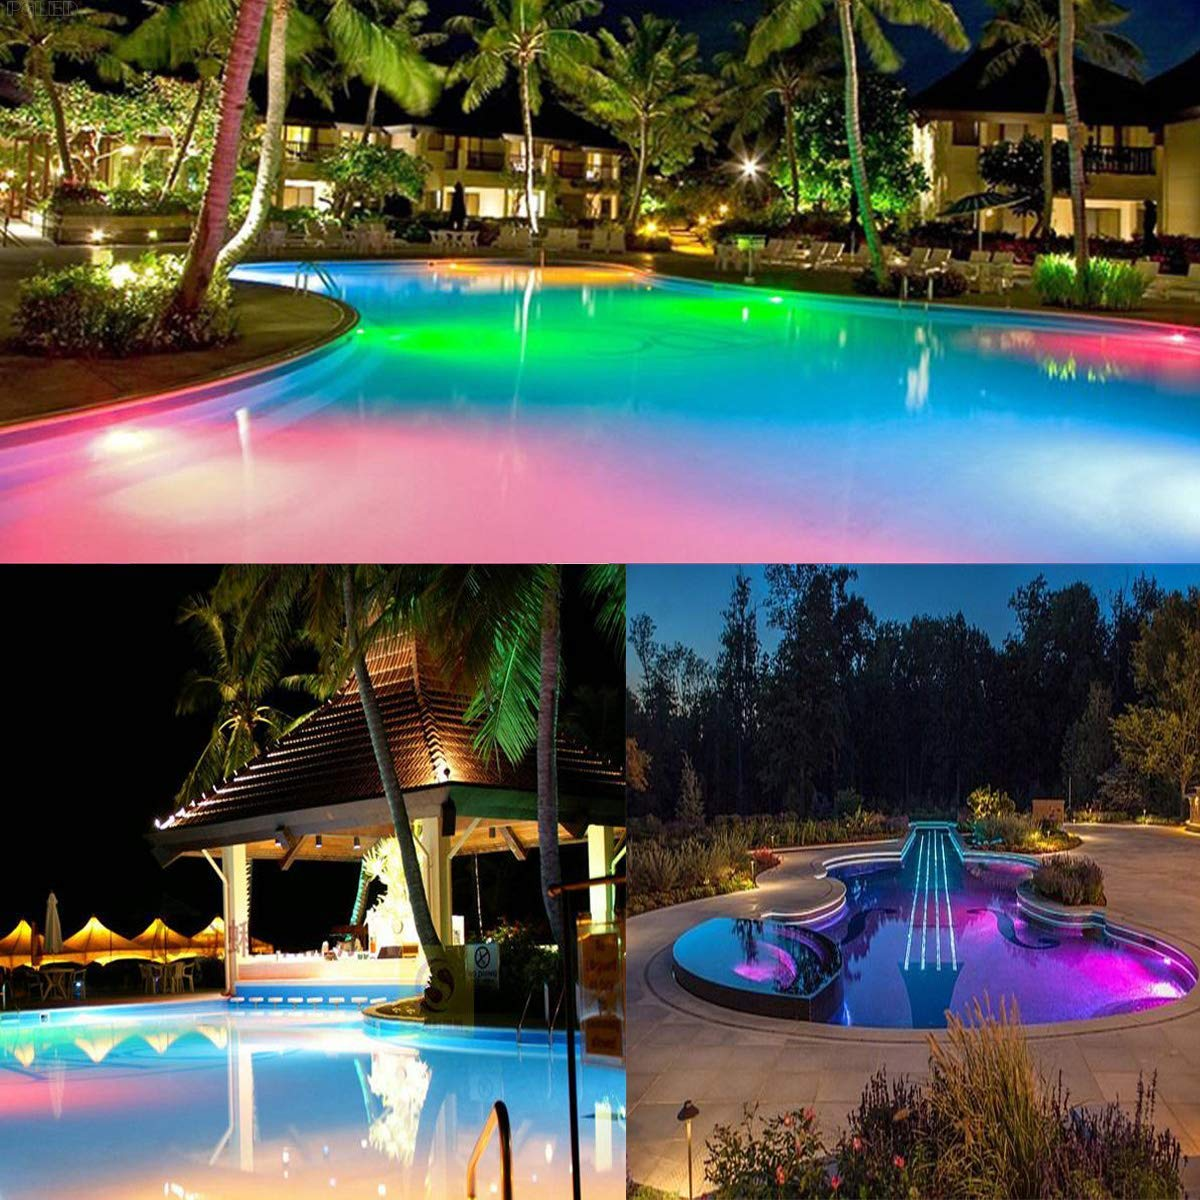 for Pentair Hayward Light Fixture,and for Inground Pool Fits Light Fixture E26//E27 Color Memory 12V 35W AC//DC Color Changing Swimming Pool Lights LED Bulb Switch Control + Remote Control Type